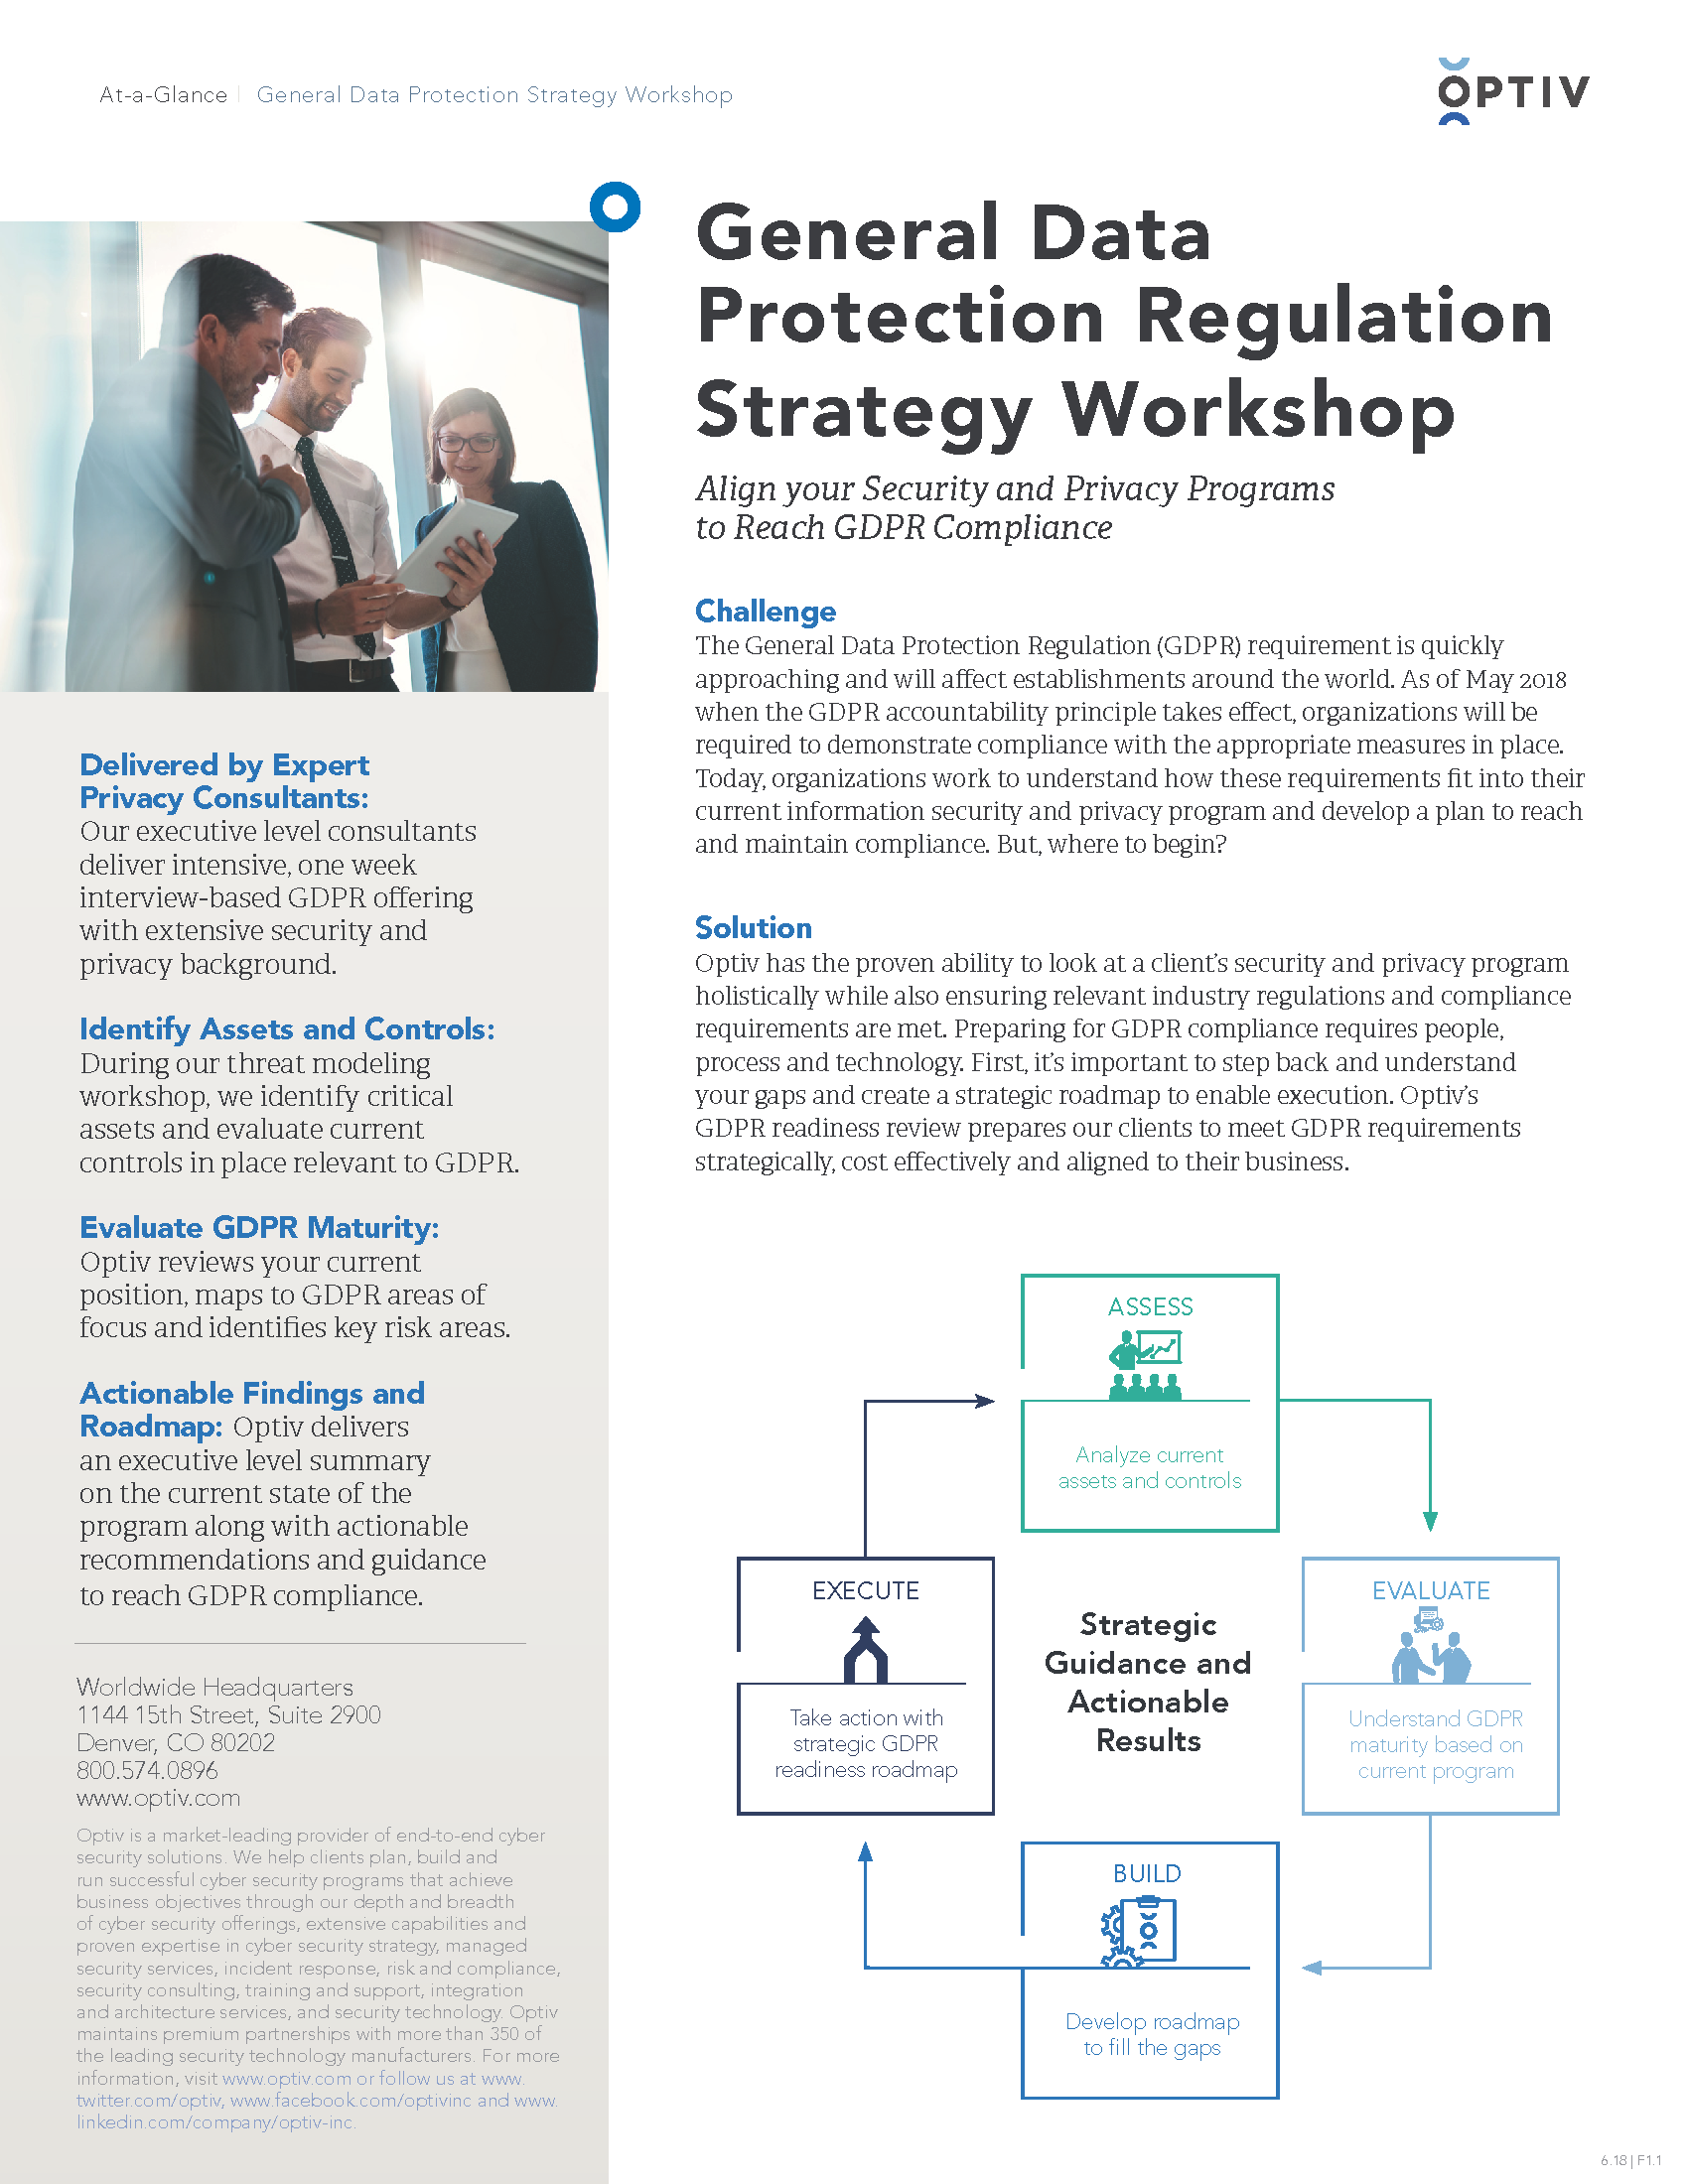 General Data Protection Regulation Readiness Review Security Preparing For Gdpr Compliance Requires People Process And Technology Optiv Has The Proven Ability To Look At A